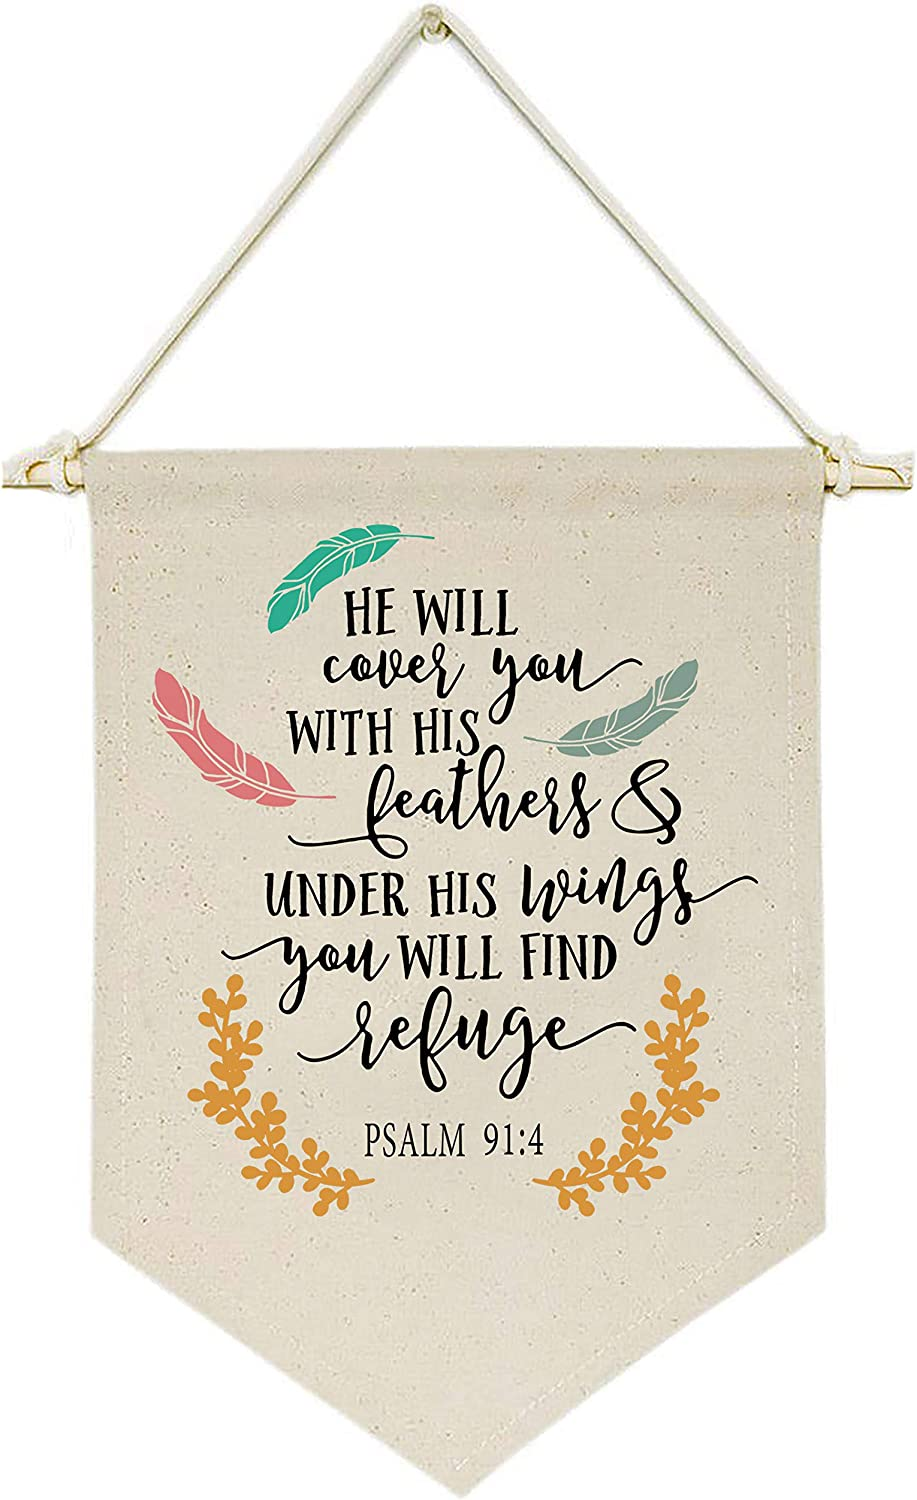 He Will Cover You With His Feathers and Under His Wings - Canvas Hanging Flag Banner Wall Sign Decor Gift for Baby Kids Girl Boy Nursery Teen Room Front Door-Psalm 91:4-Bible Verse,Religious,Scripture